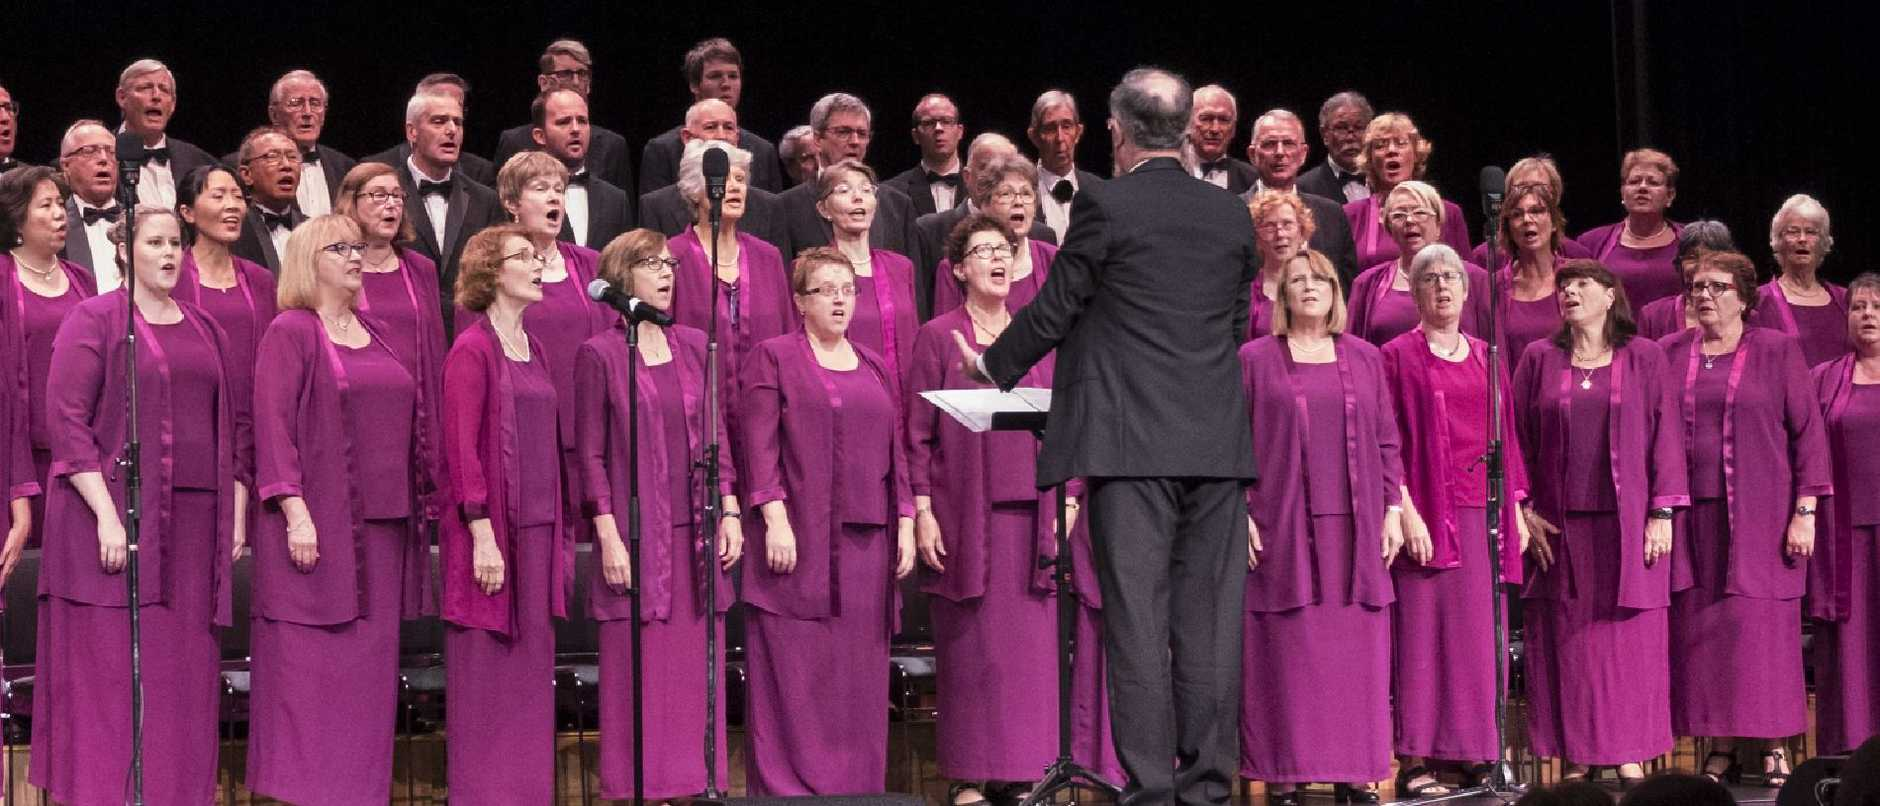 The Queensland Choir is looking for new members.